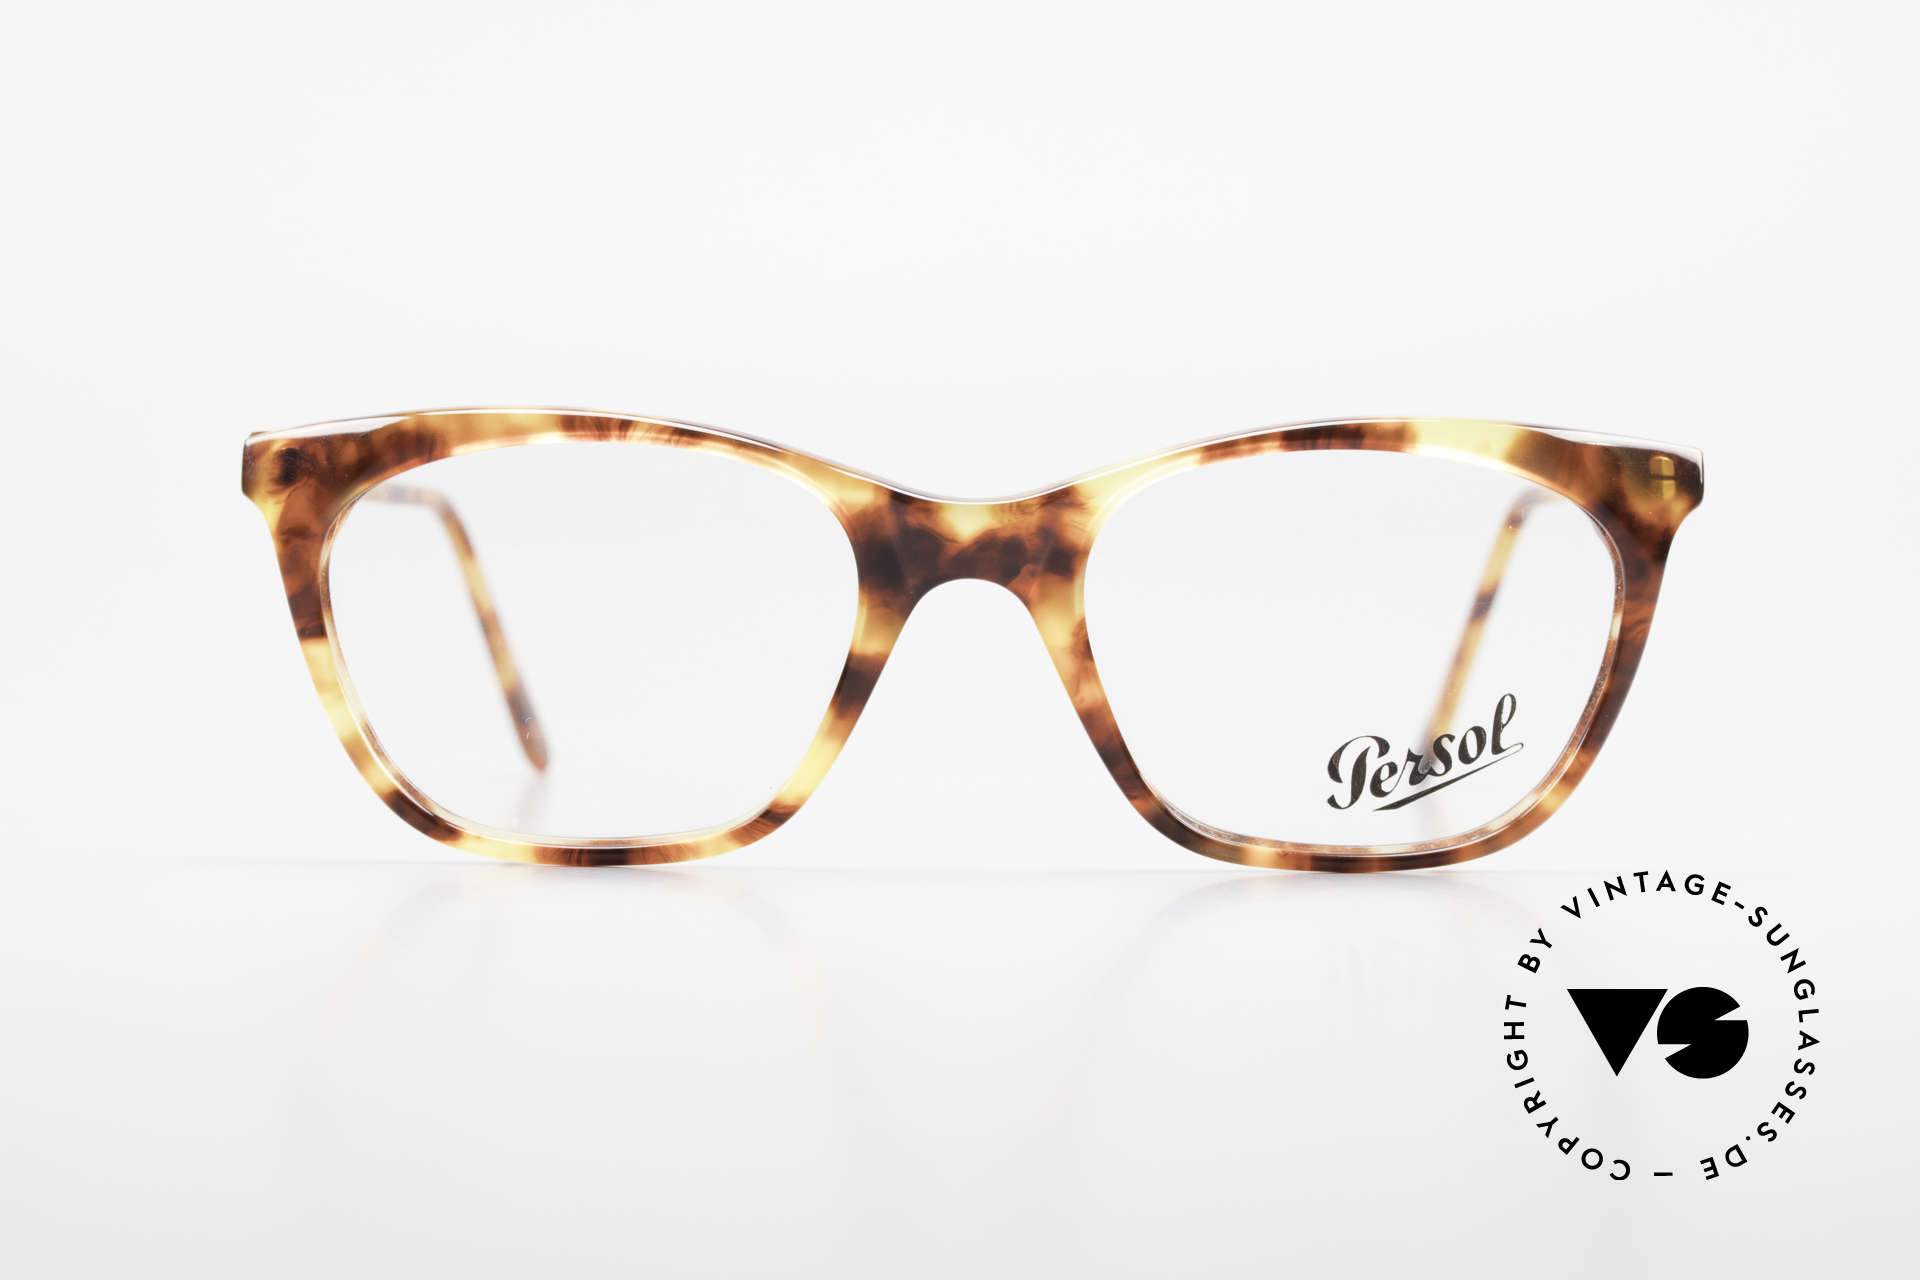 Persol 09194 Classic Vintage Frame 90's, elegant vintage glasses of the 90's by Persol, Made for Women